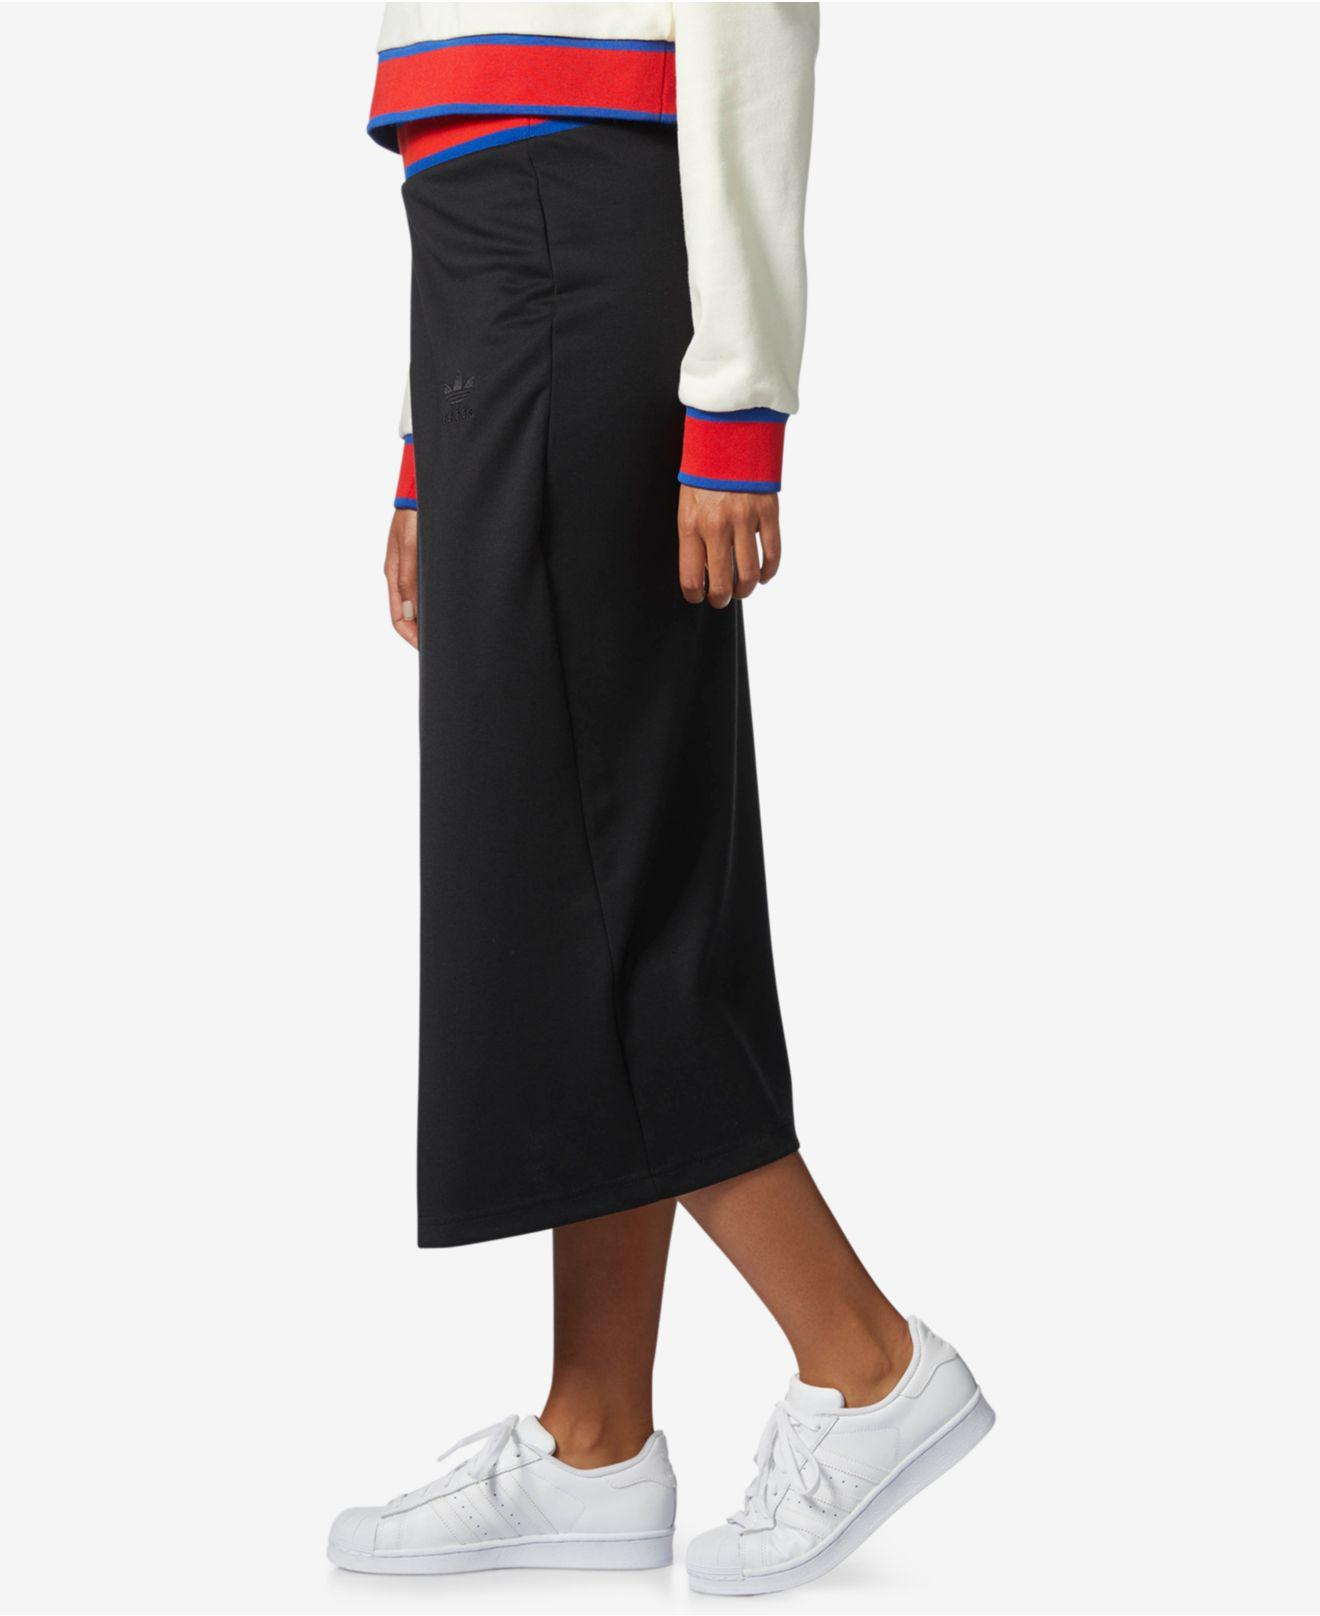 82944e74cdeb5c adidas Originals Embellished Arts Faux-wrap Skirt in Black - Lyst